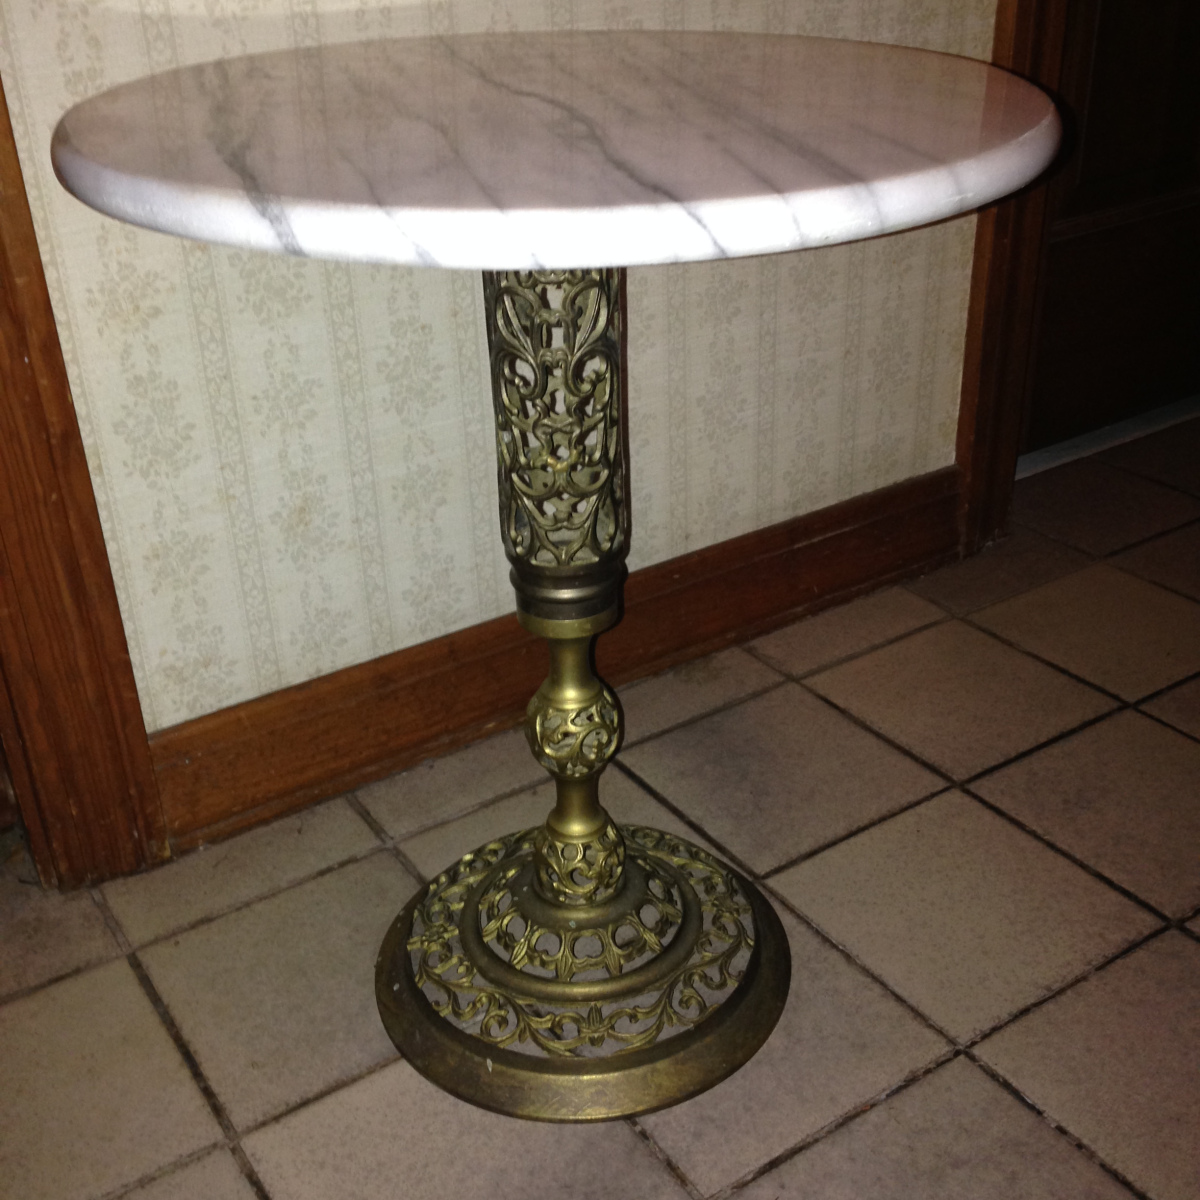 sold vintage round marble top table with ornate brass hallway accent bistro rectangle end drawer industrial look tables extra large clock glass metal pier one ott farm style